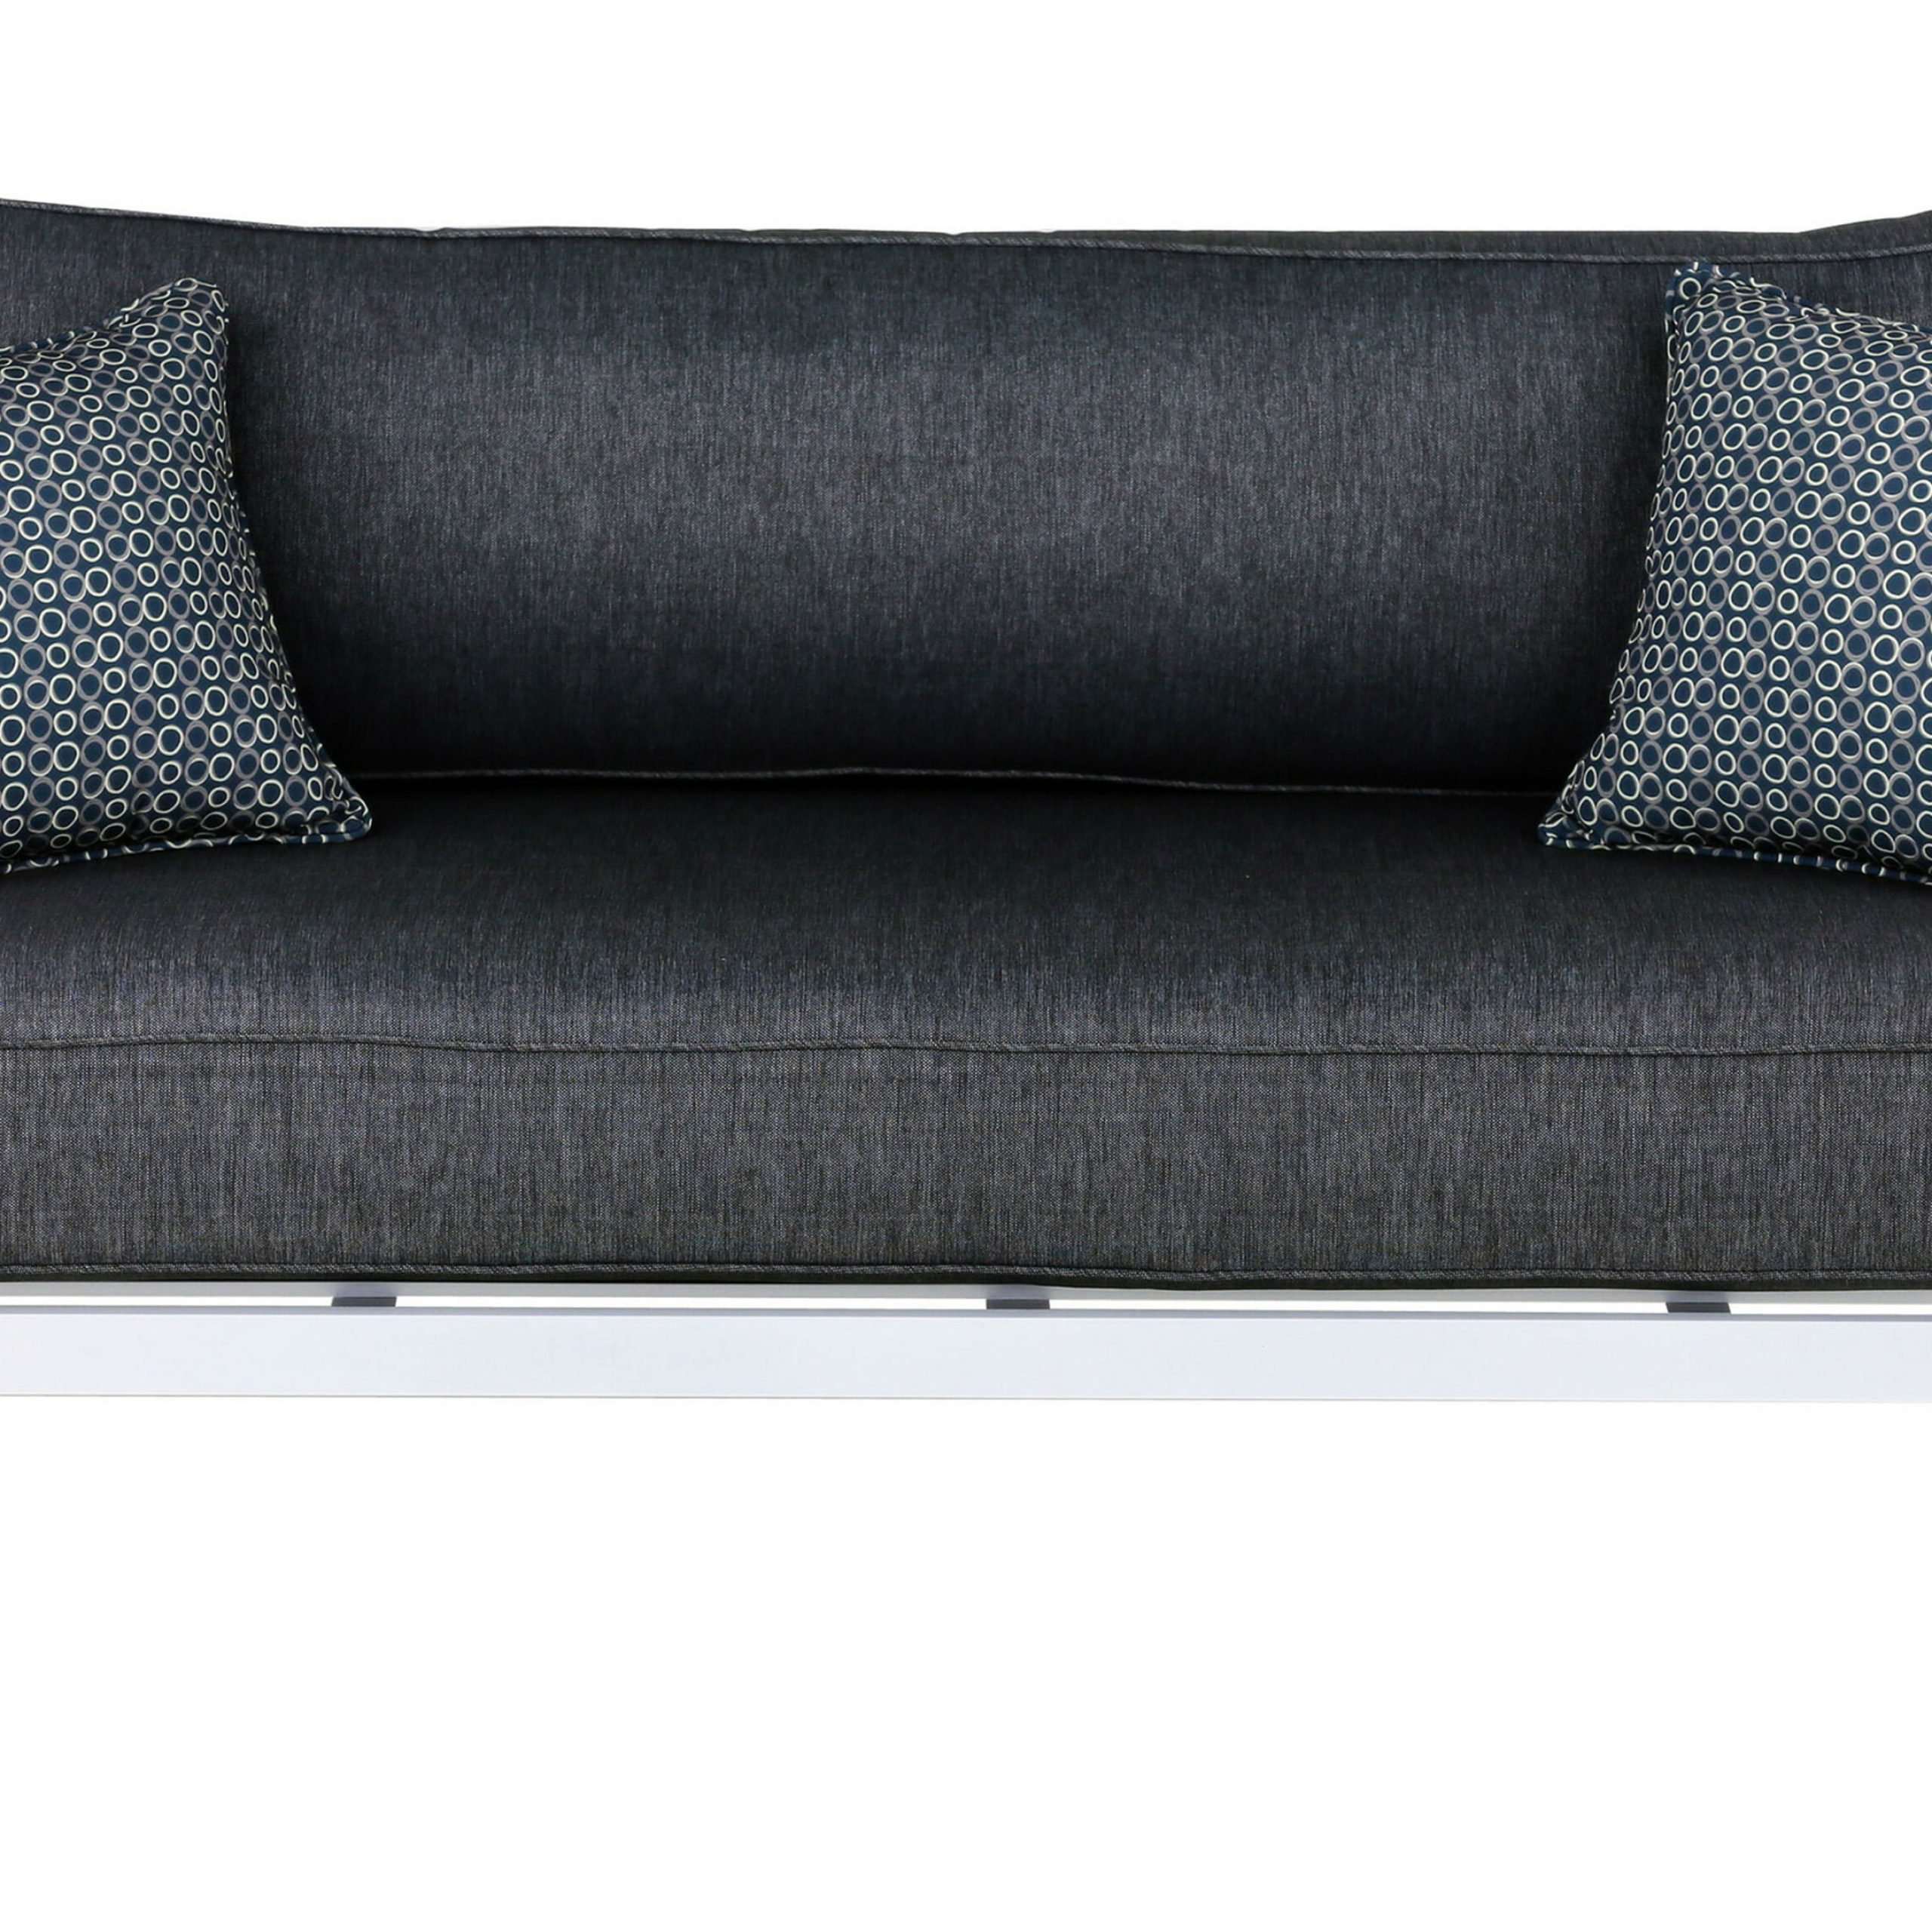 Well Known Paloma Sofas With Cushions Regarding Paloma Sofa With Cushions (Gallery 11 of 25)